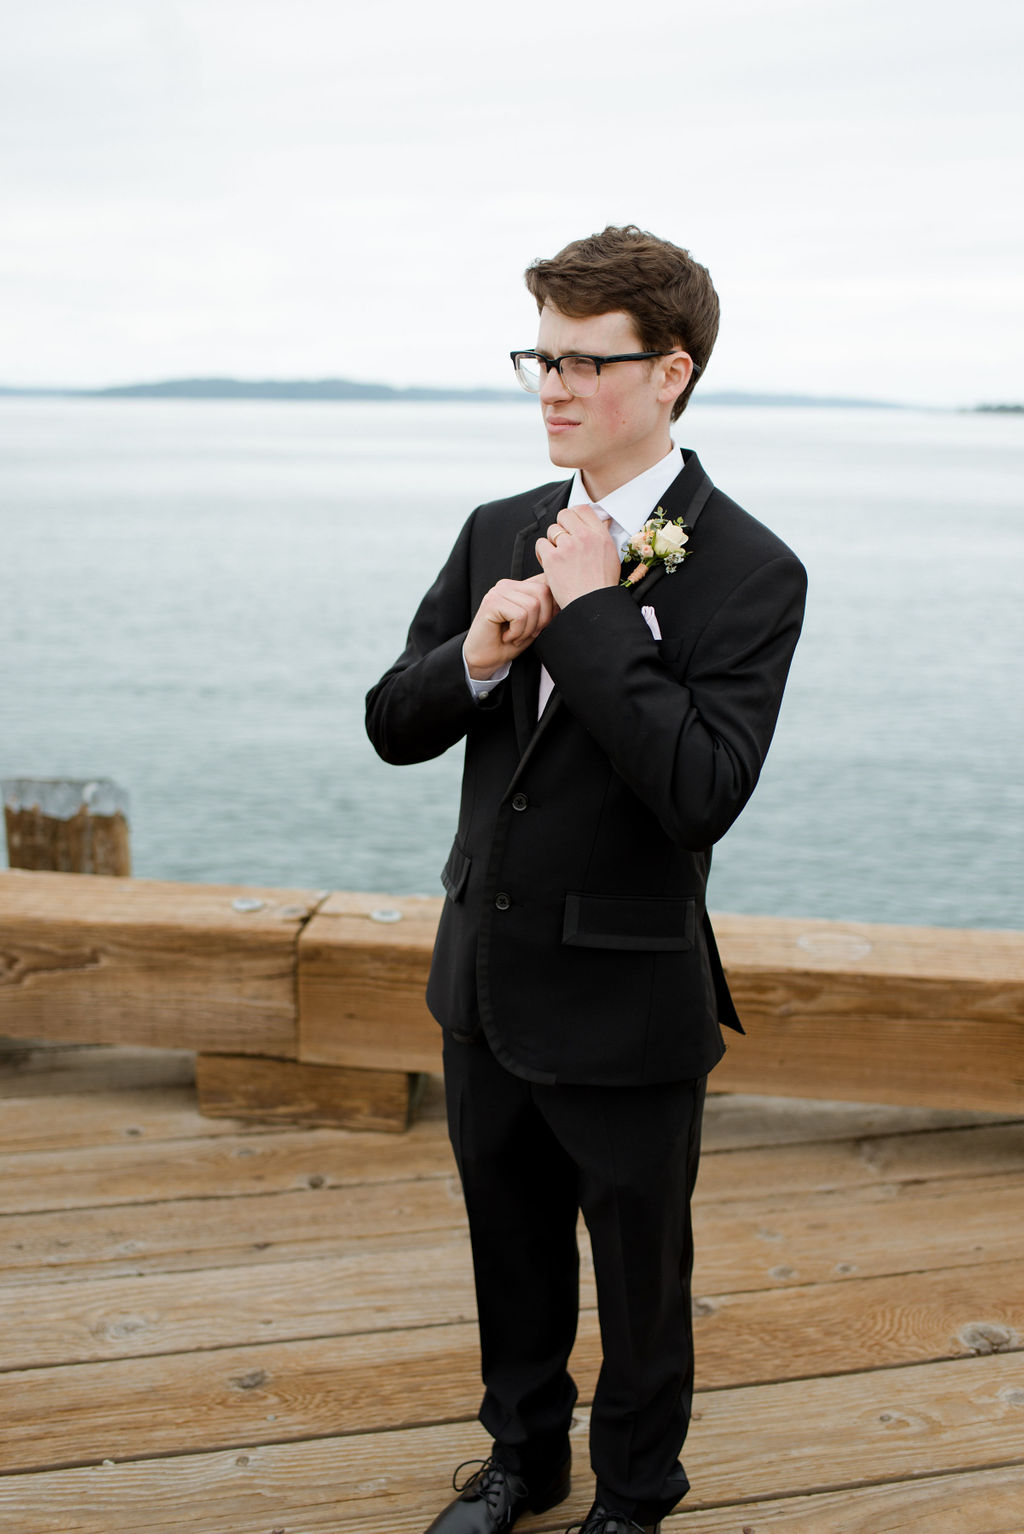 Groom at Old Town Dock